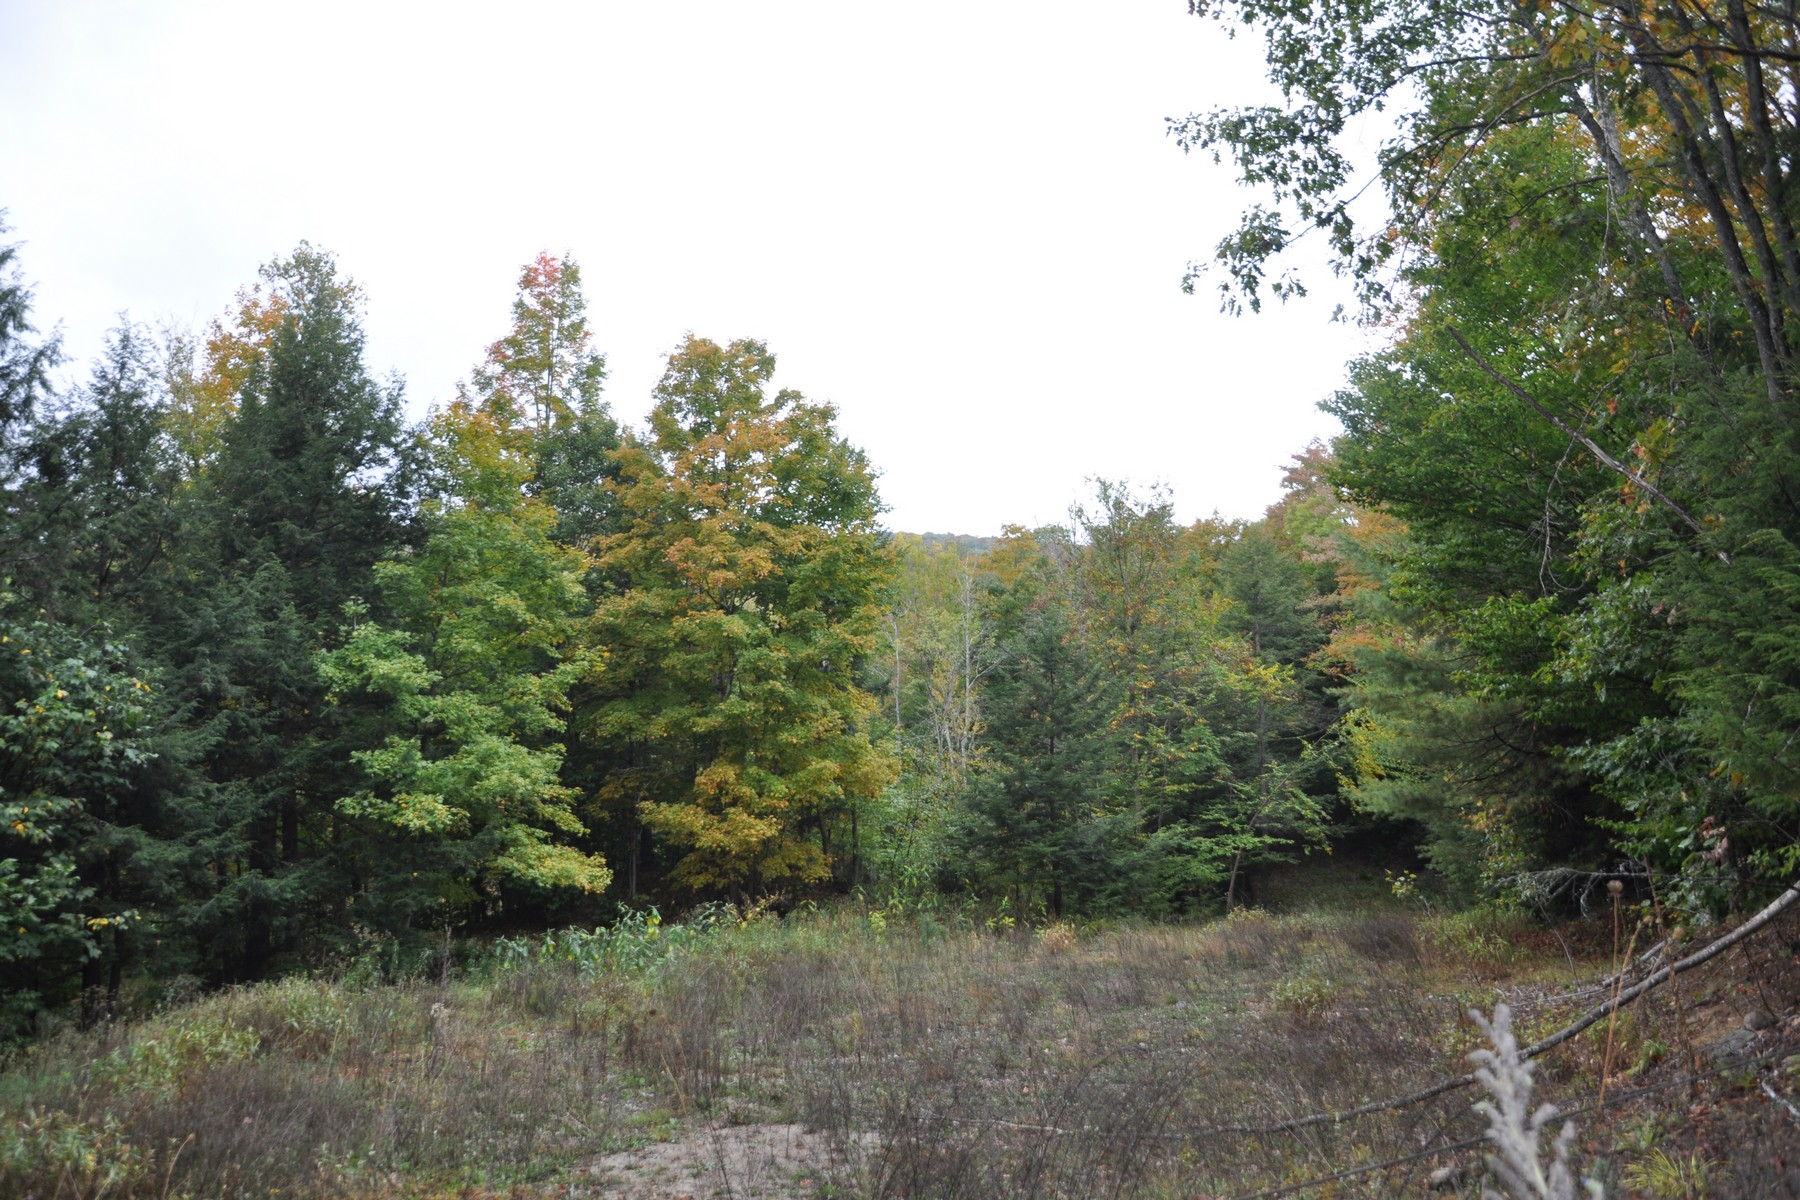 Land for Sale at 177+ Acre Parcel With 2 Acre Cleared Building Site 45 Valley Rd Thurman, New York 12810 United States